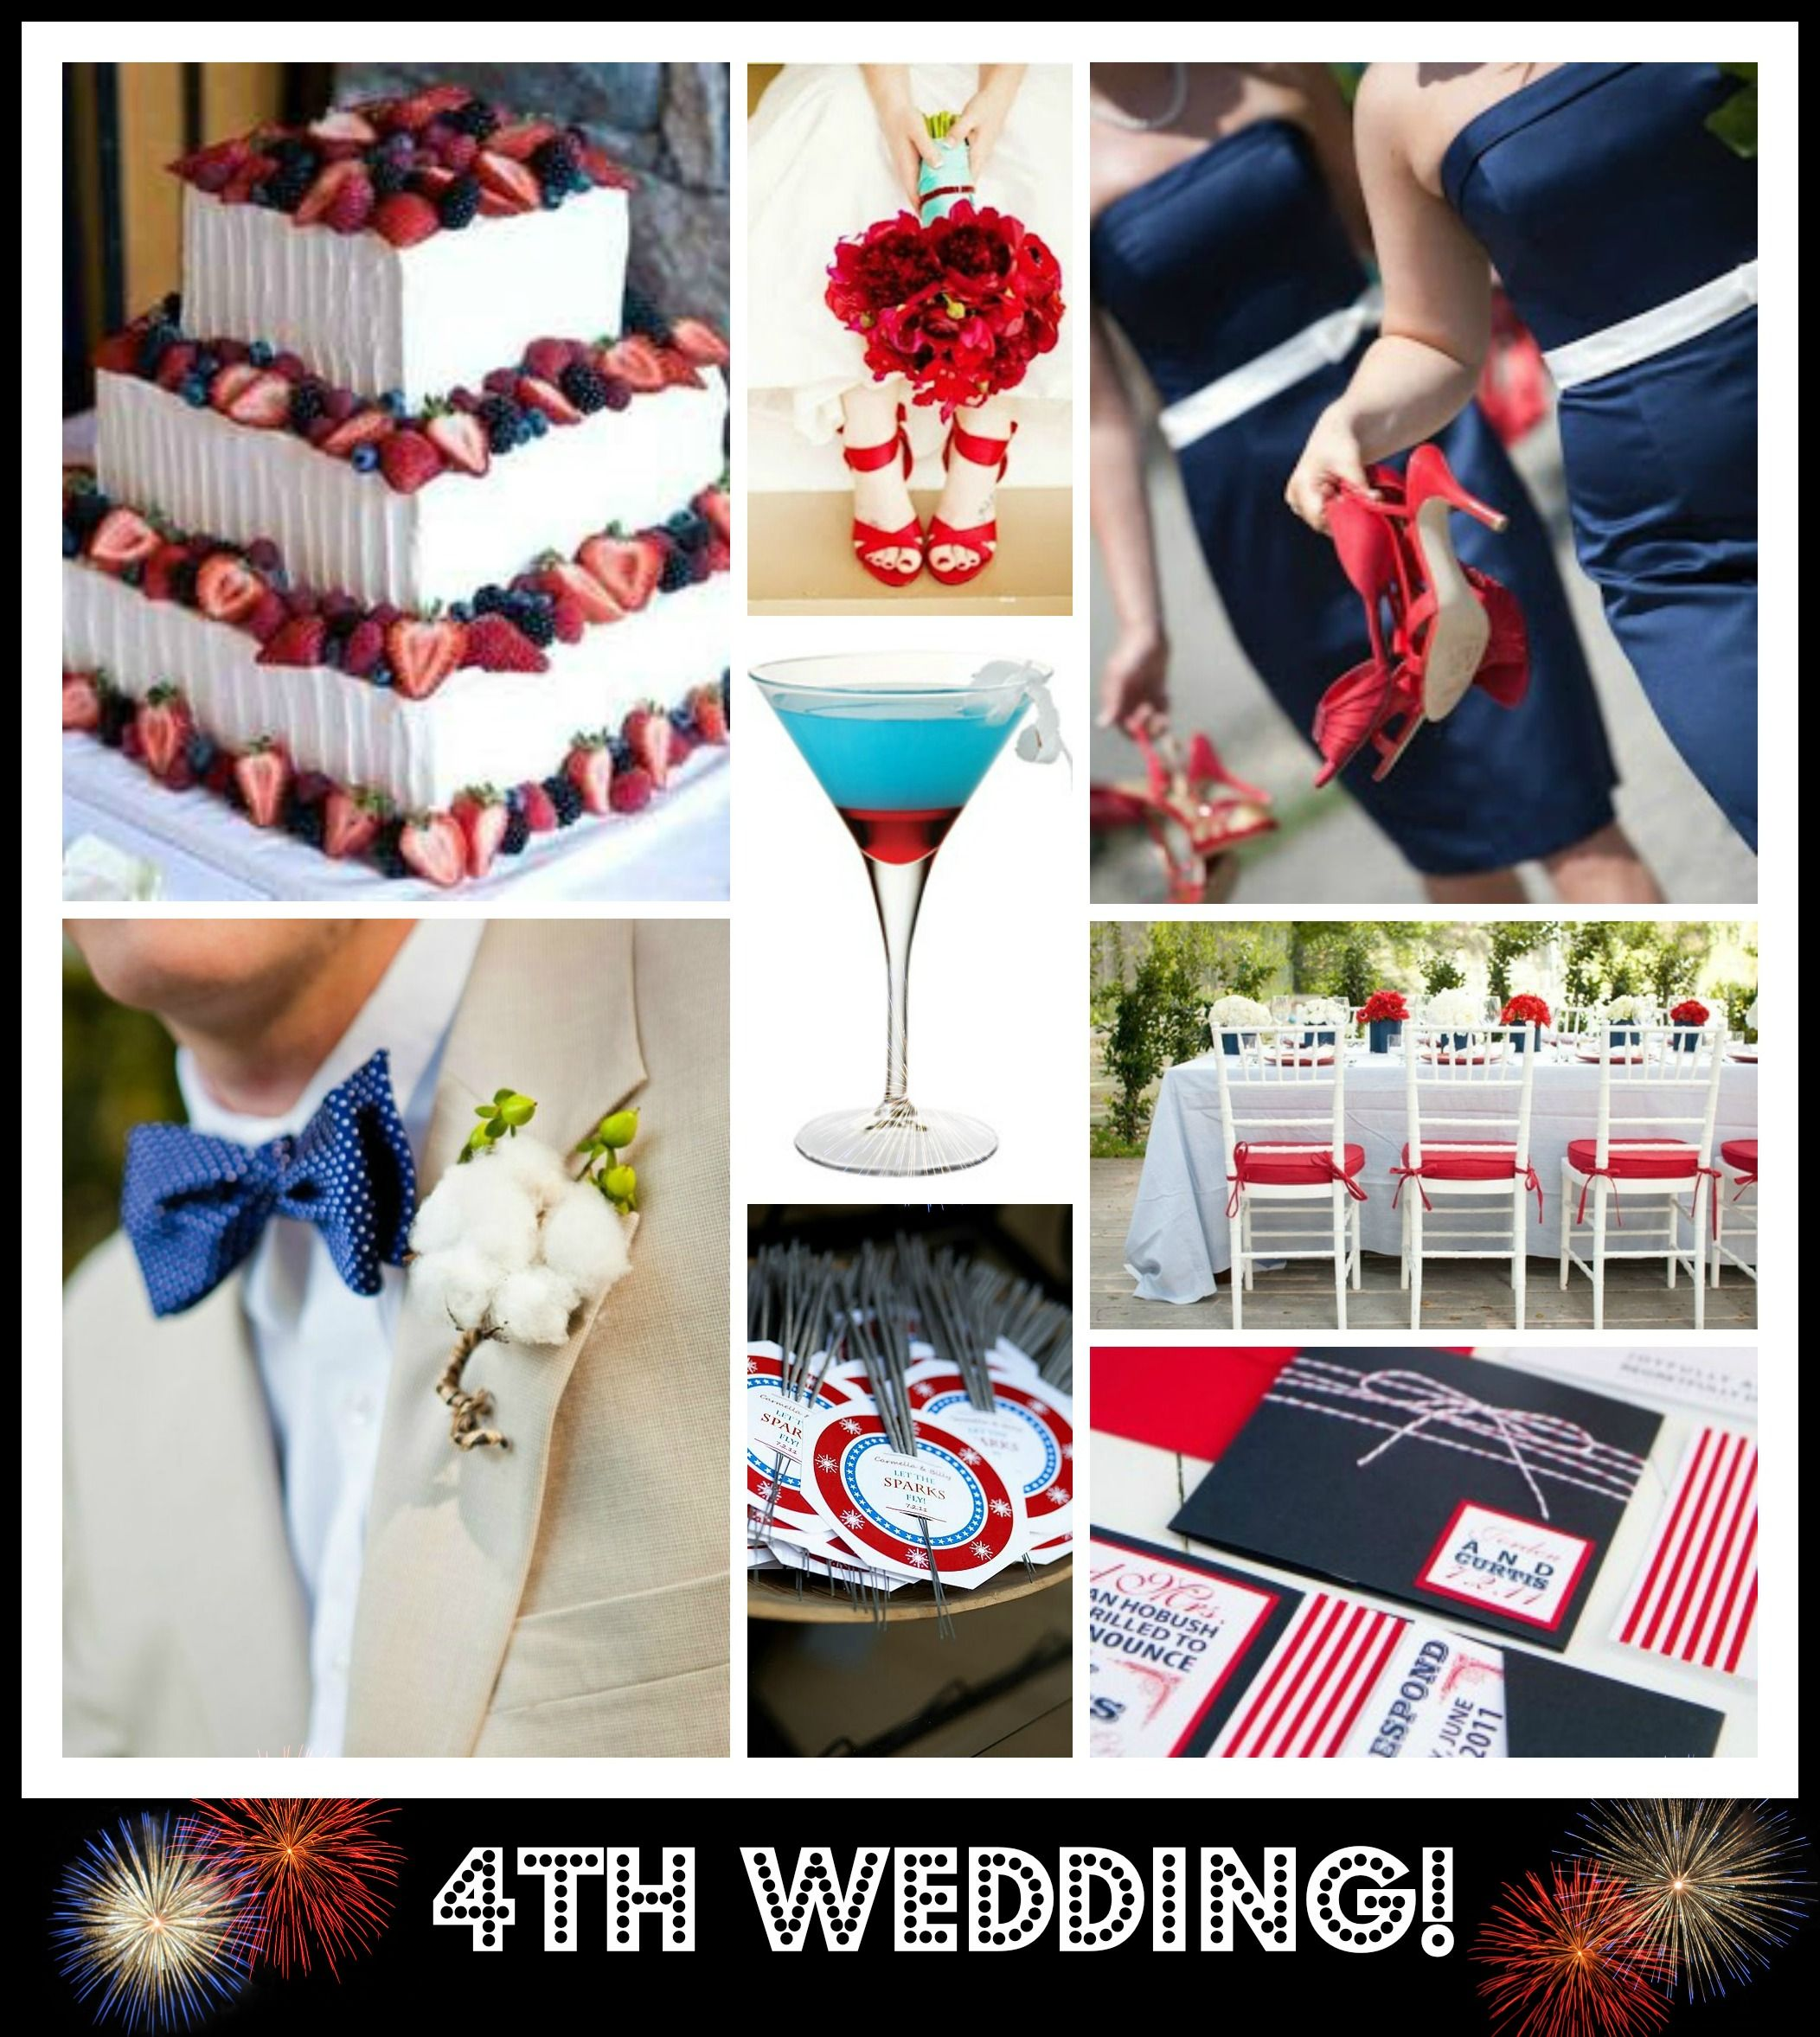 4th of July Wedding Inspiration! Love red, white and blue